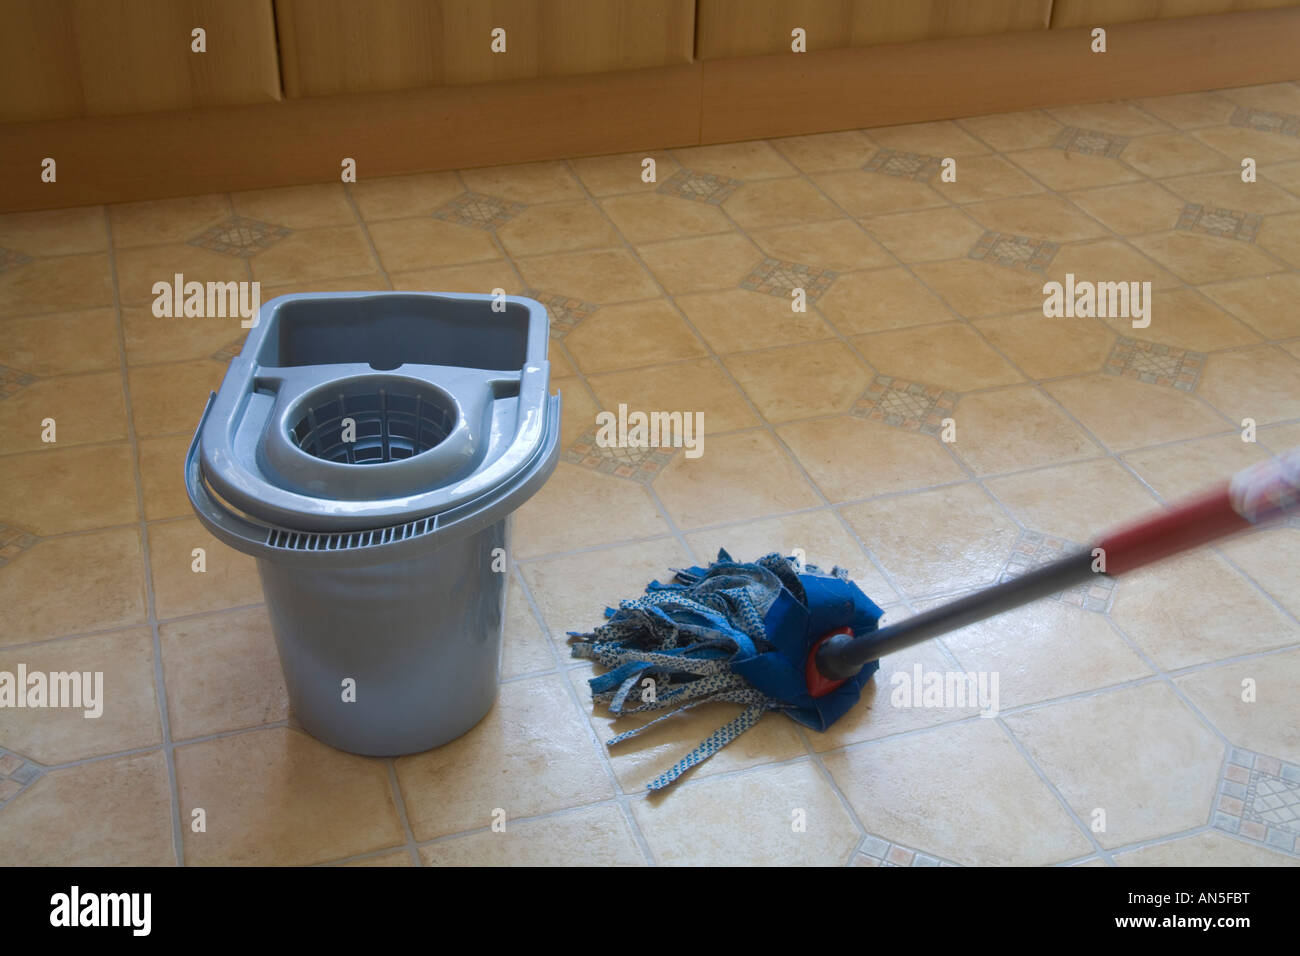 Kitchen Floor Mops Studio Close Up Washing A Kitchen Floor Using A Blue Fabric Mop